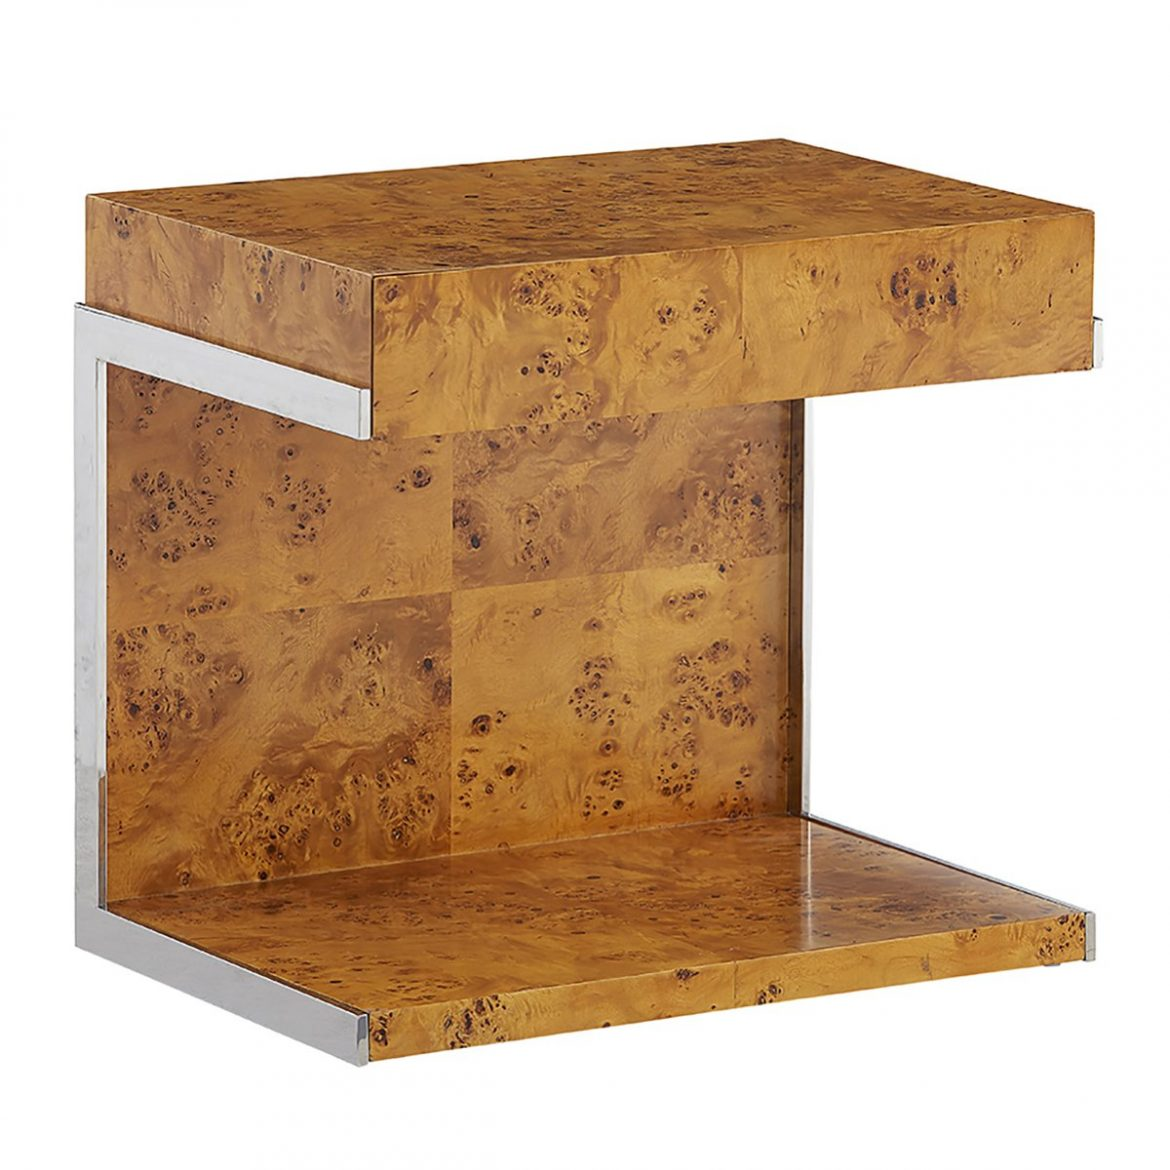 side tables 25 Modern Side Tables You Can Buy Online bond cantilevered side table x1200